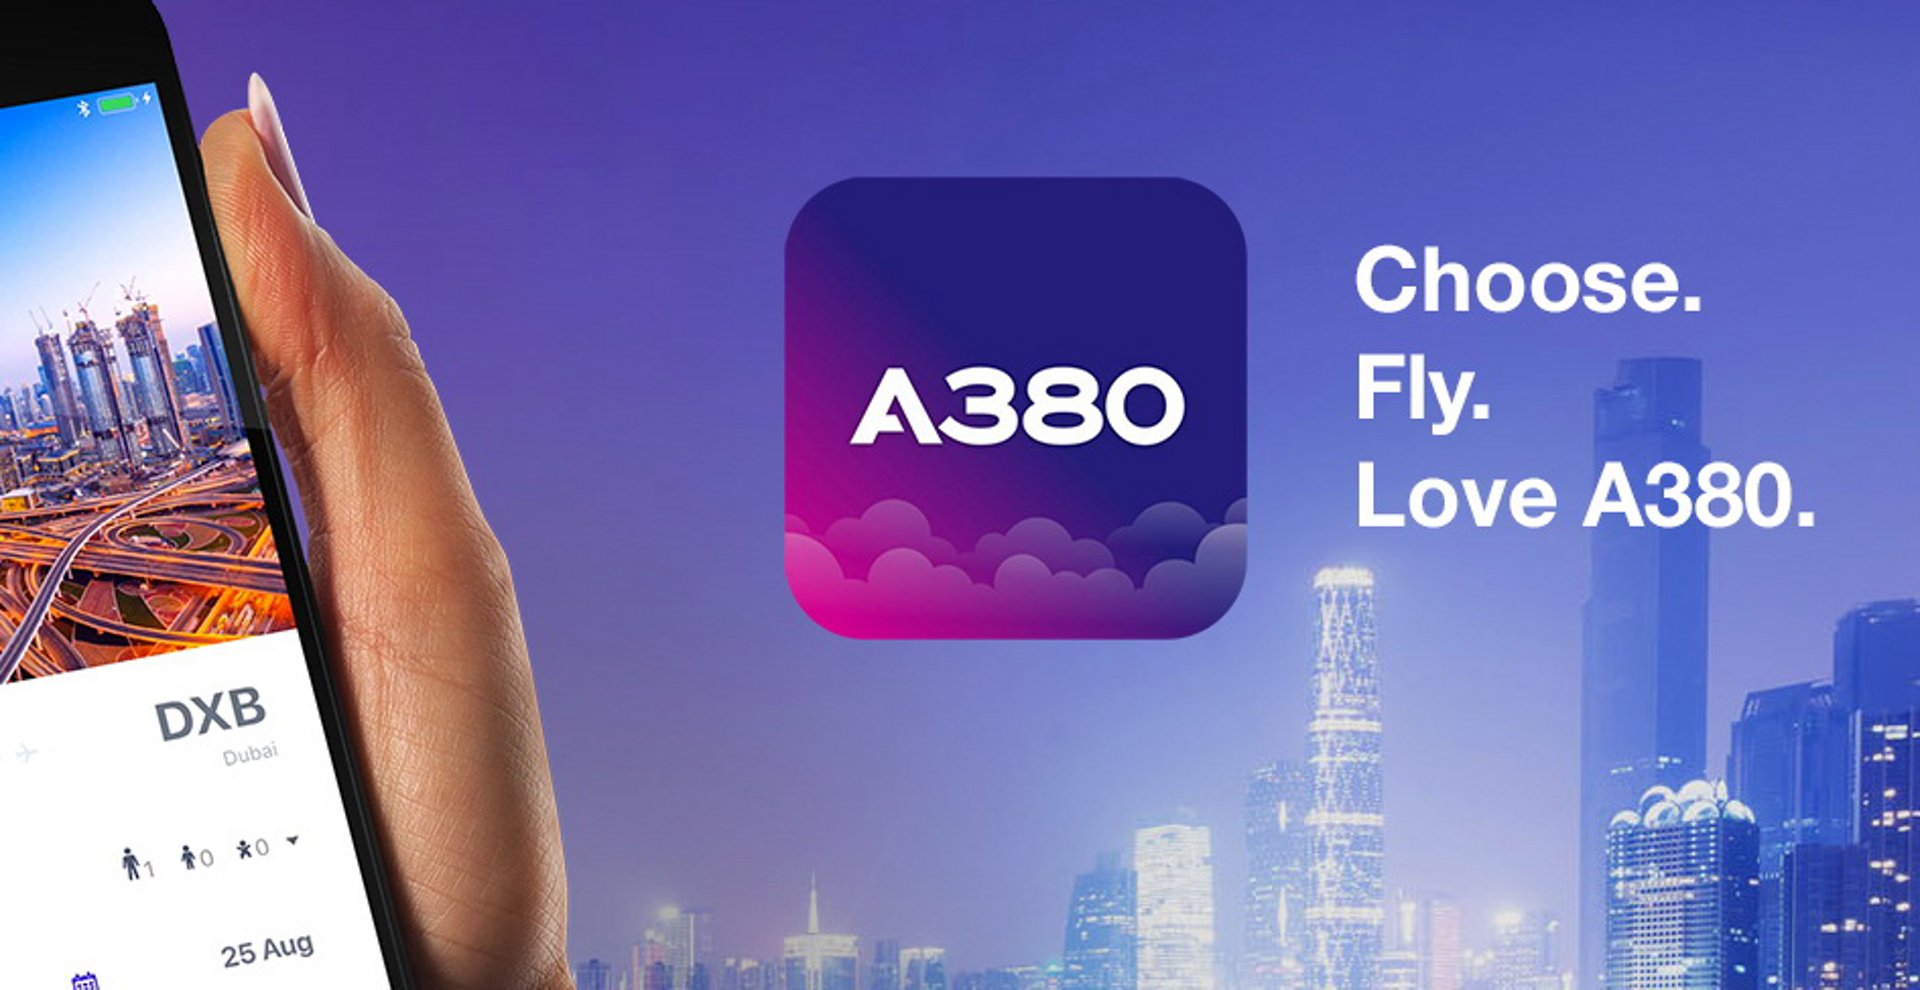 Airbus' iflyA380 app for smarter travel now available for Android users